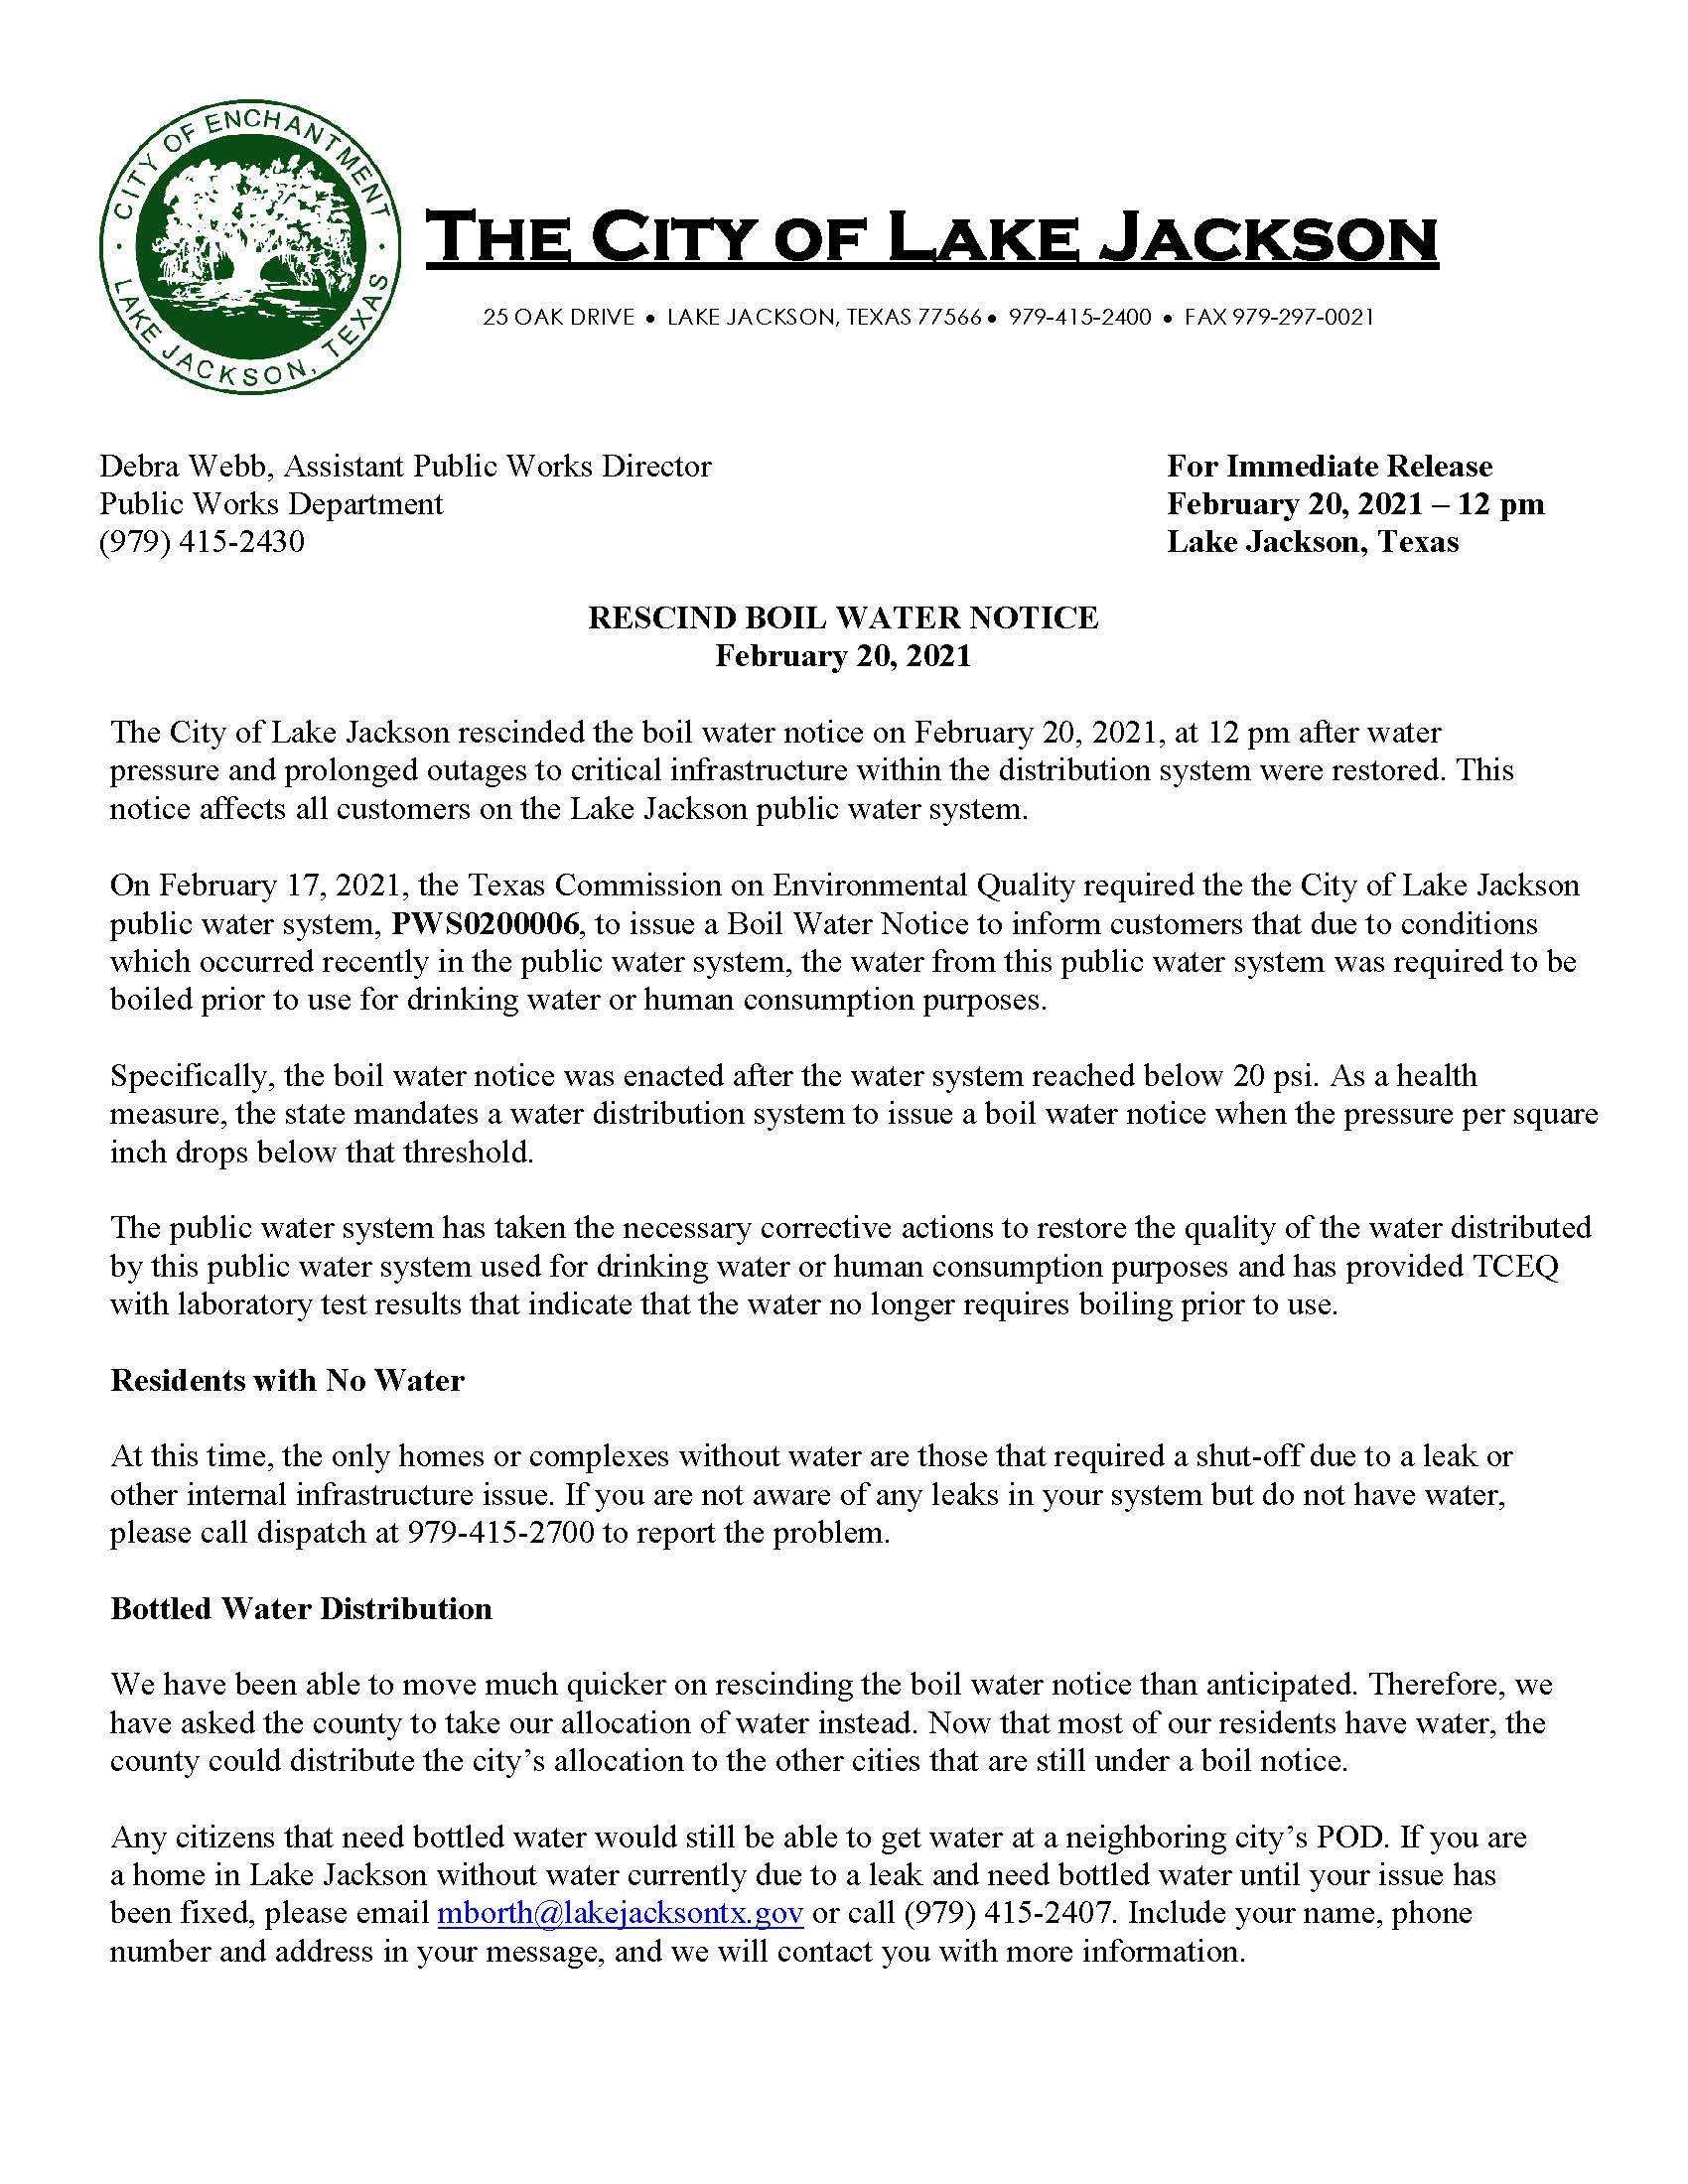 RESCIND Boil Water Notice